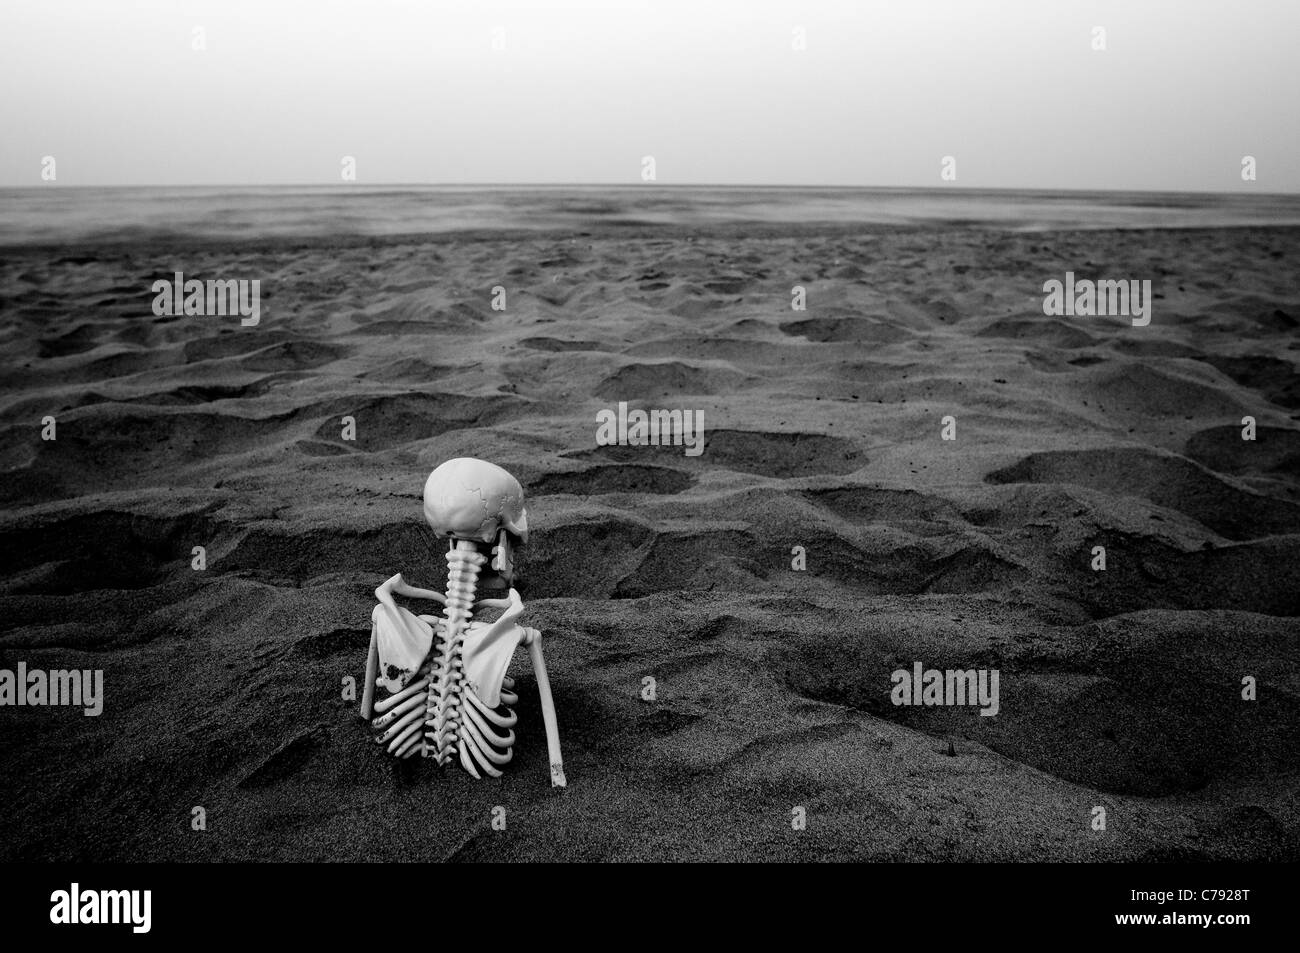 Skeleton trapped in the sand - Stock Image